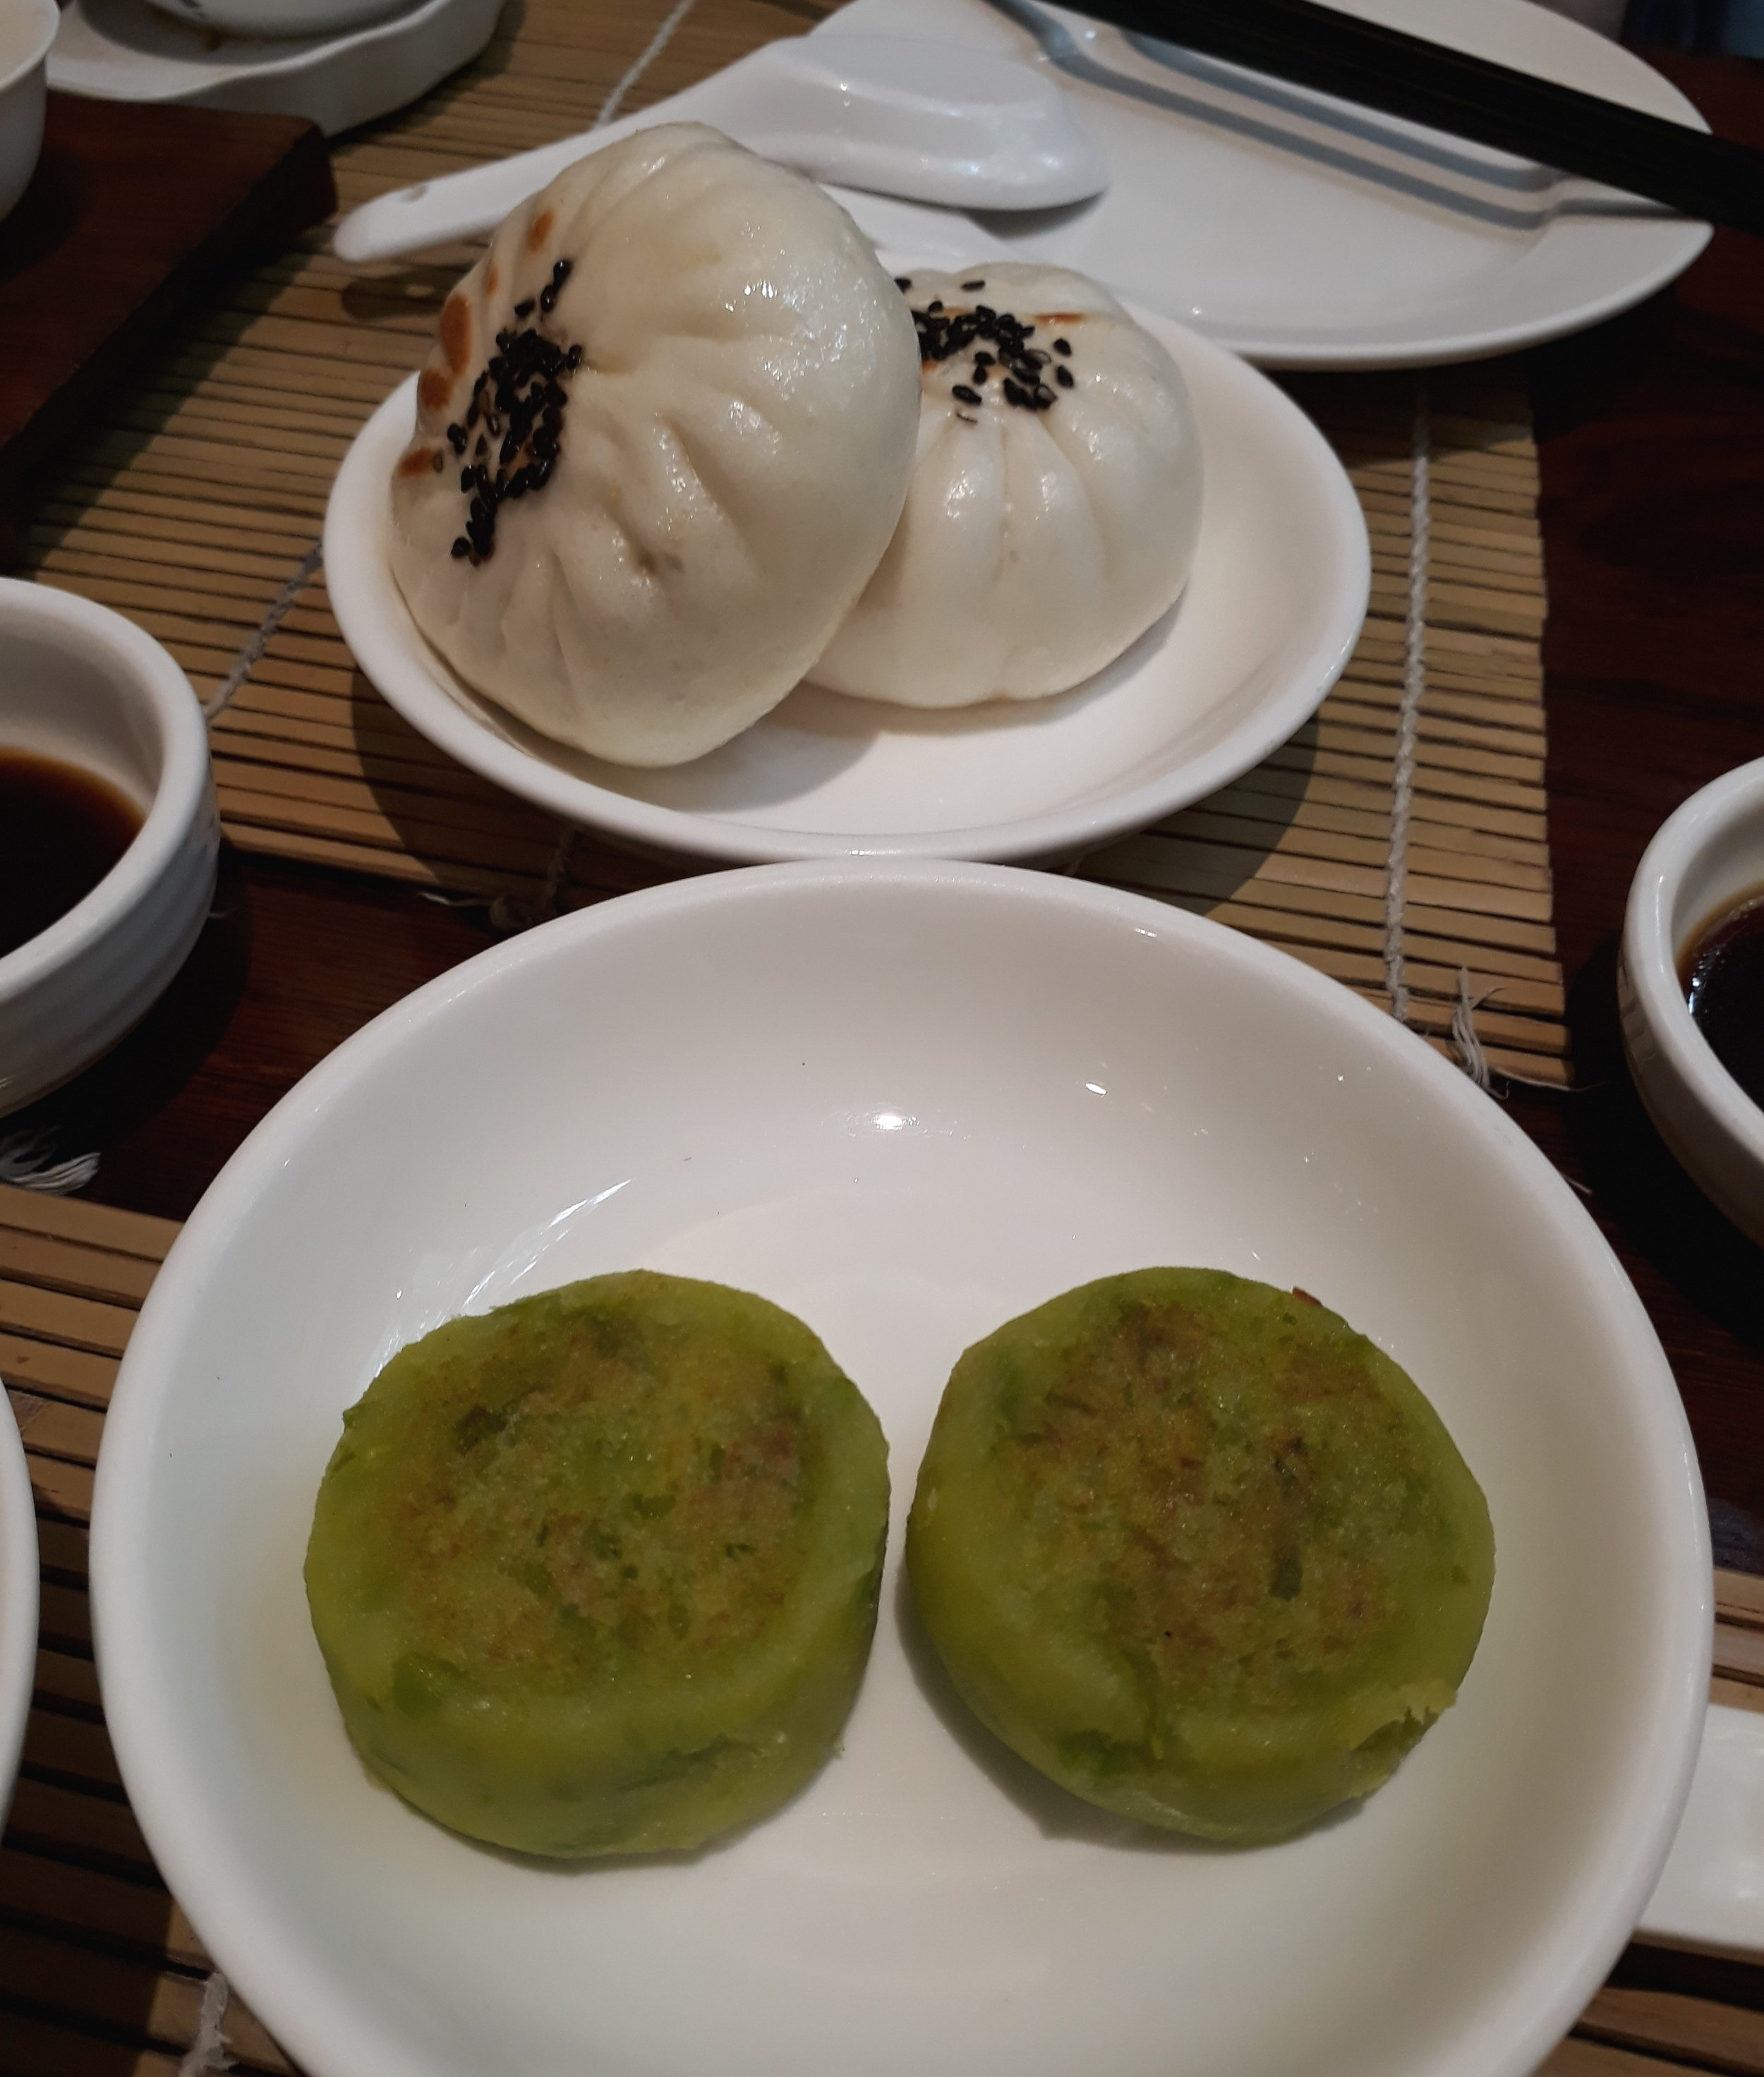 Another reason to come to LockCha is for the dim sum